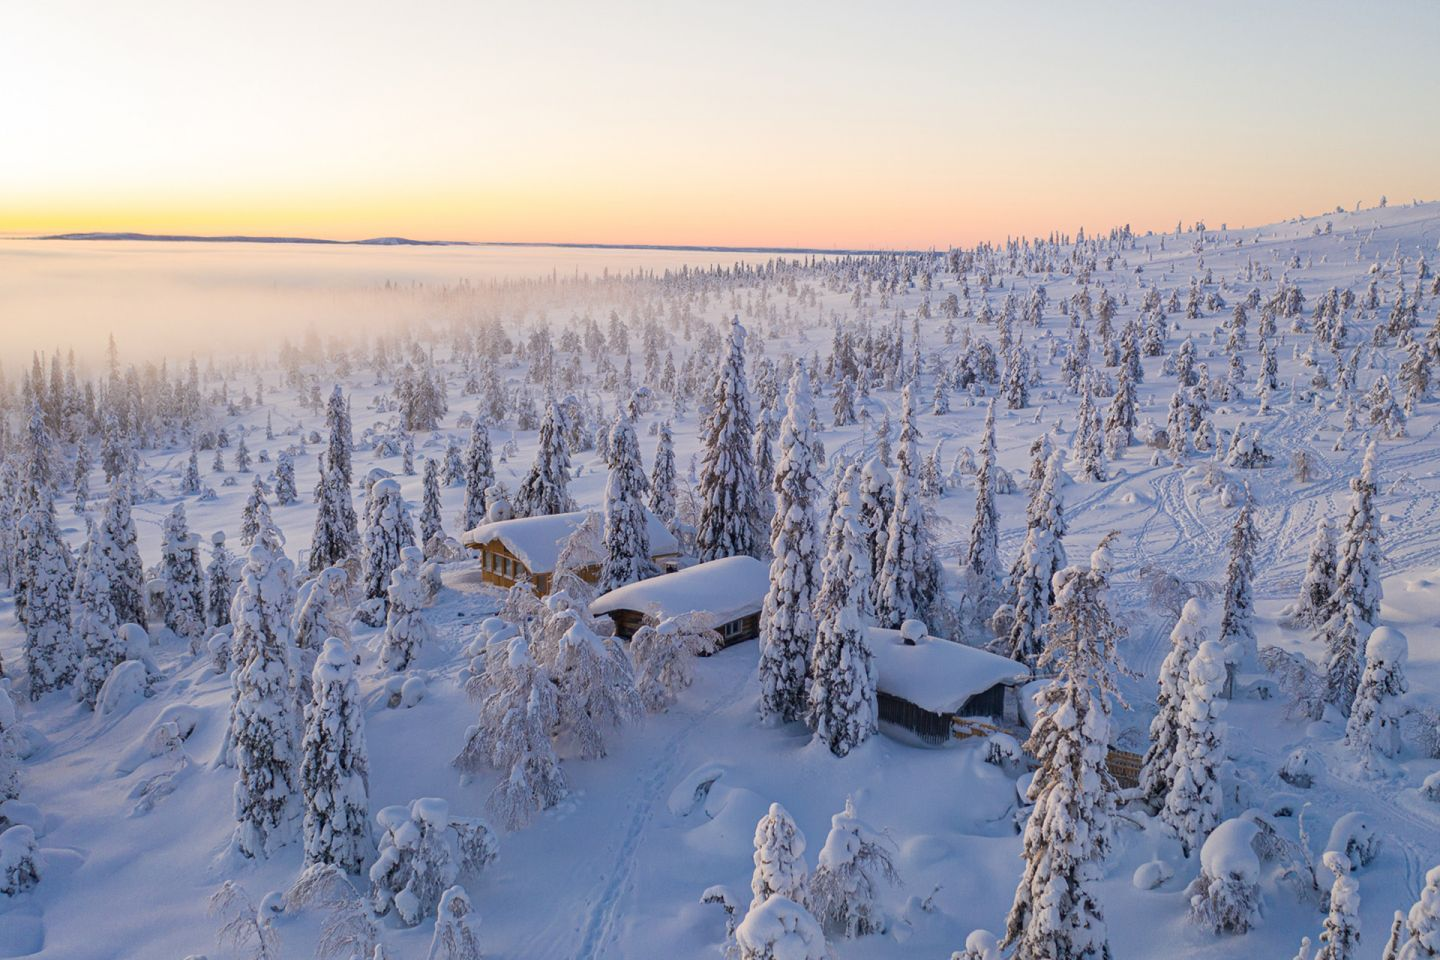 Crown snow-load in Riisitunturi National Park in Posio, Lapland, Finland